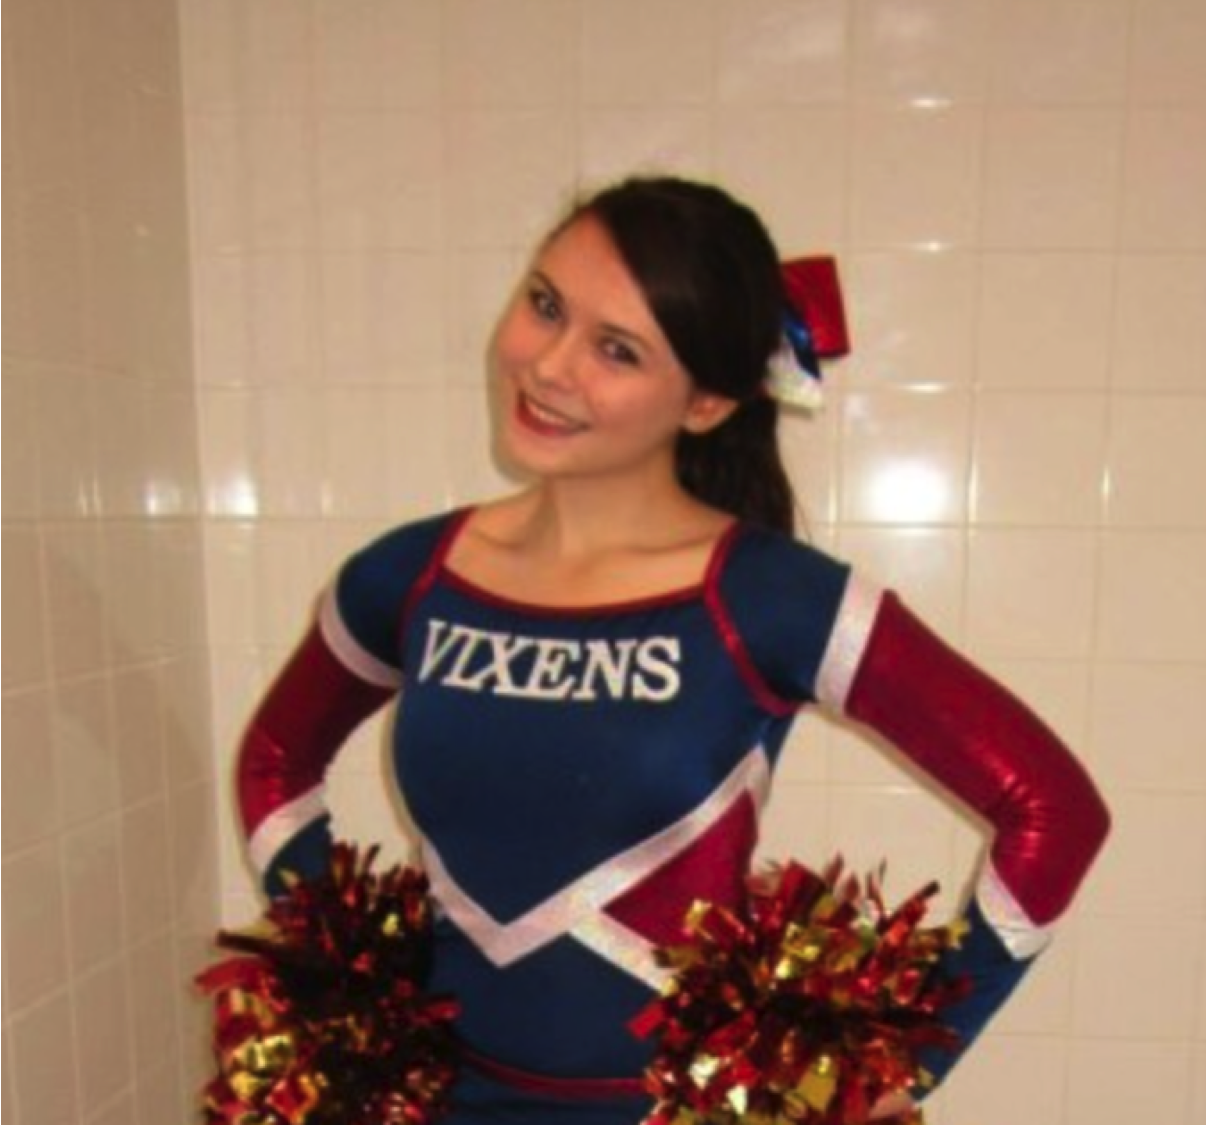 Lucy: Former University of Southampton cheerleader who works at the Institute of Cancer Research